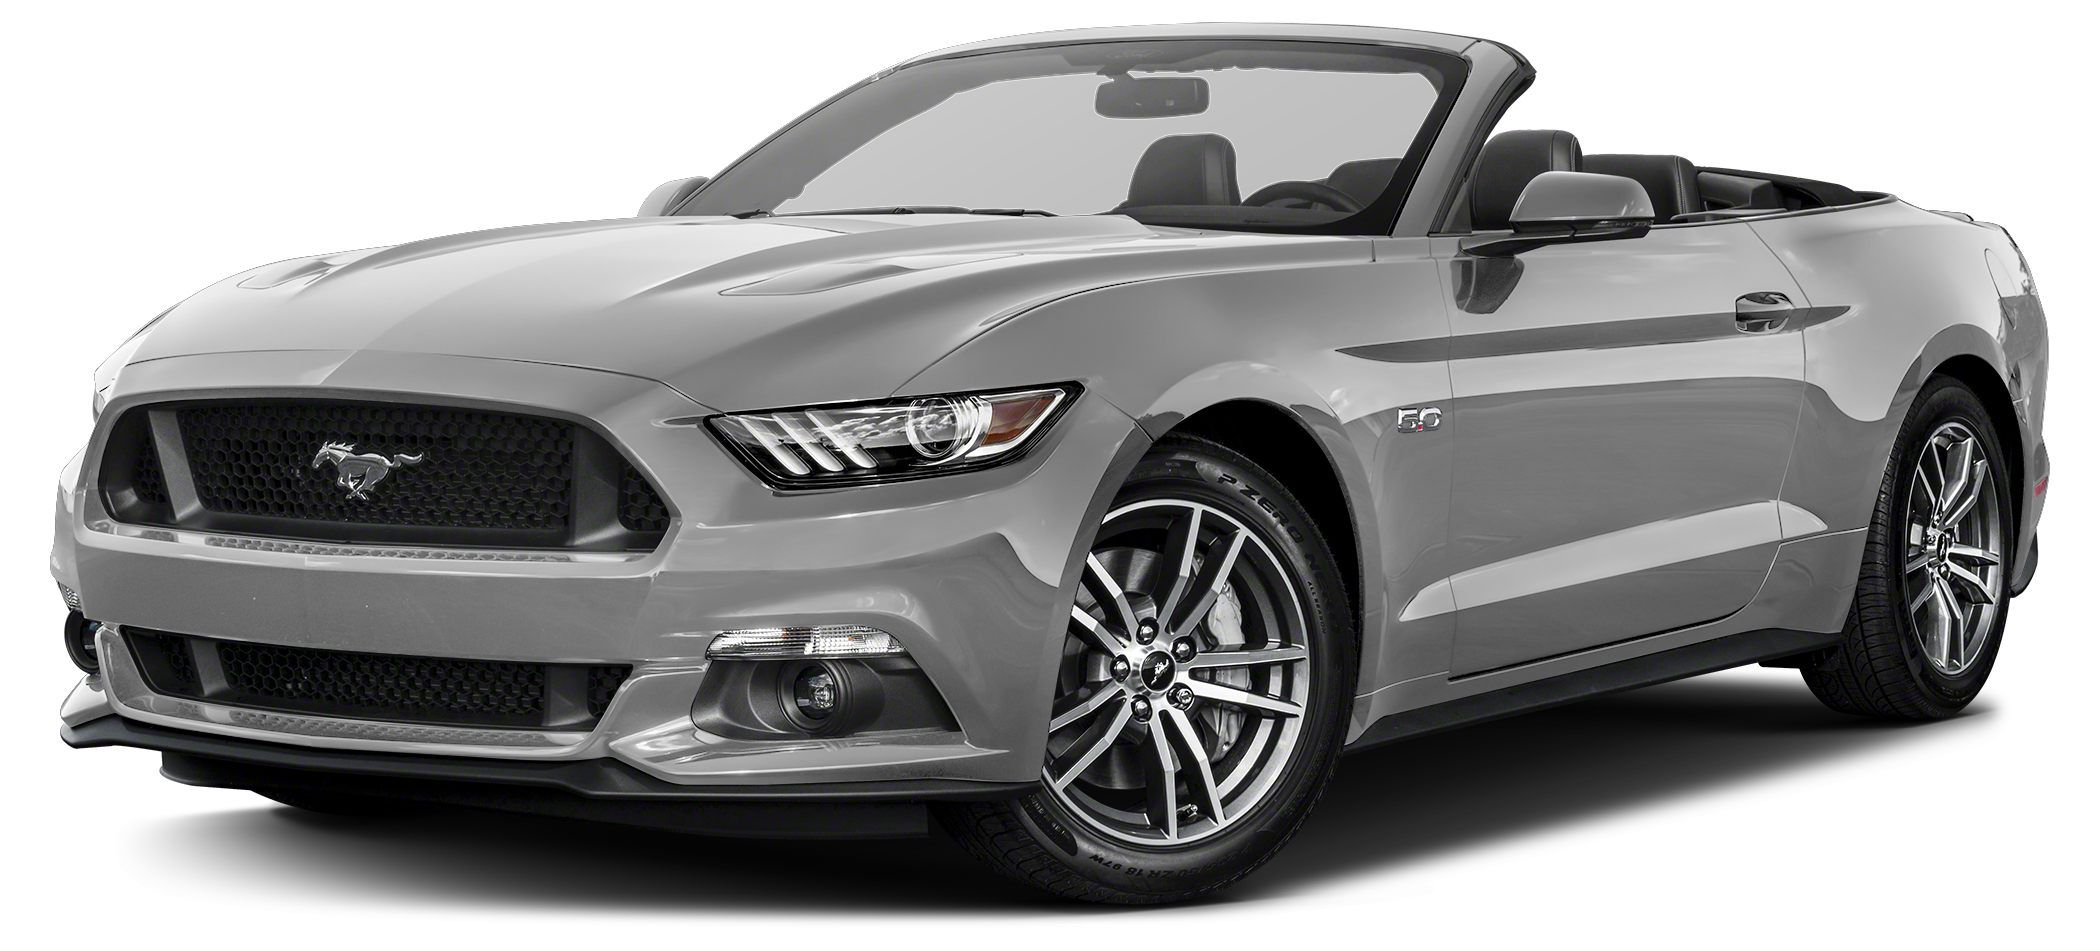 2015 Ford Mustang GT Premium 50 Years Appearance Package Equipment Group 401A Mustang GT Premium